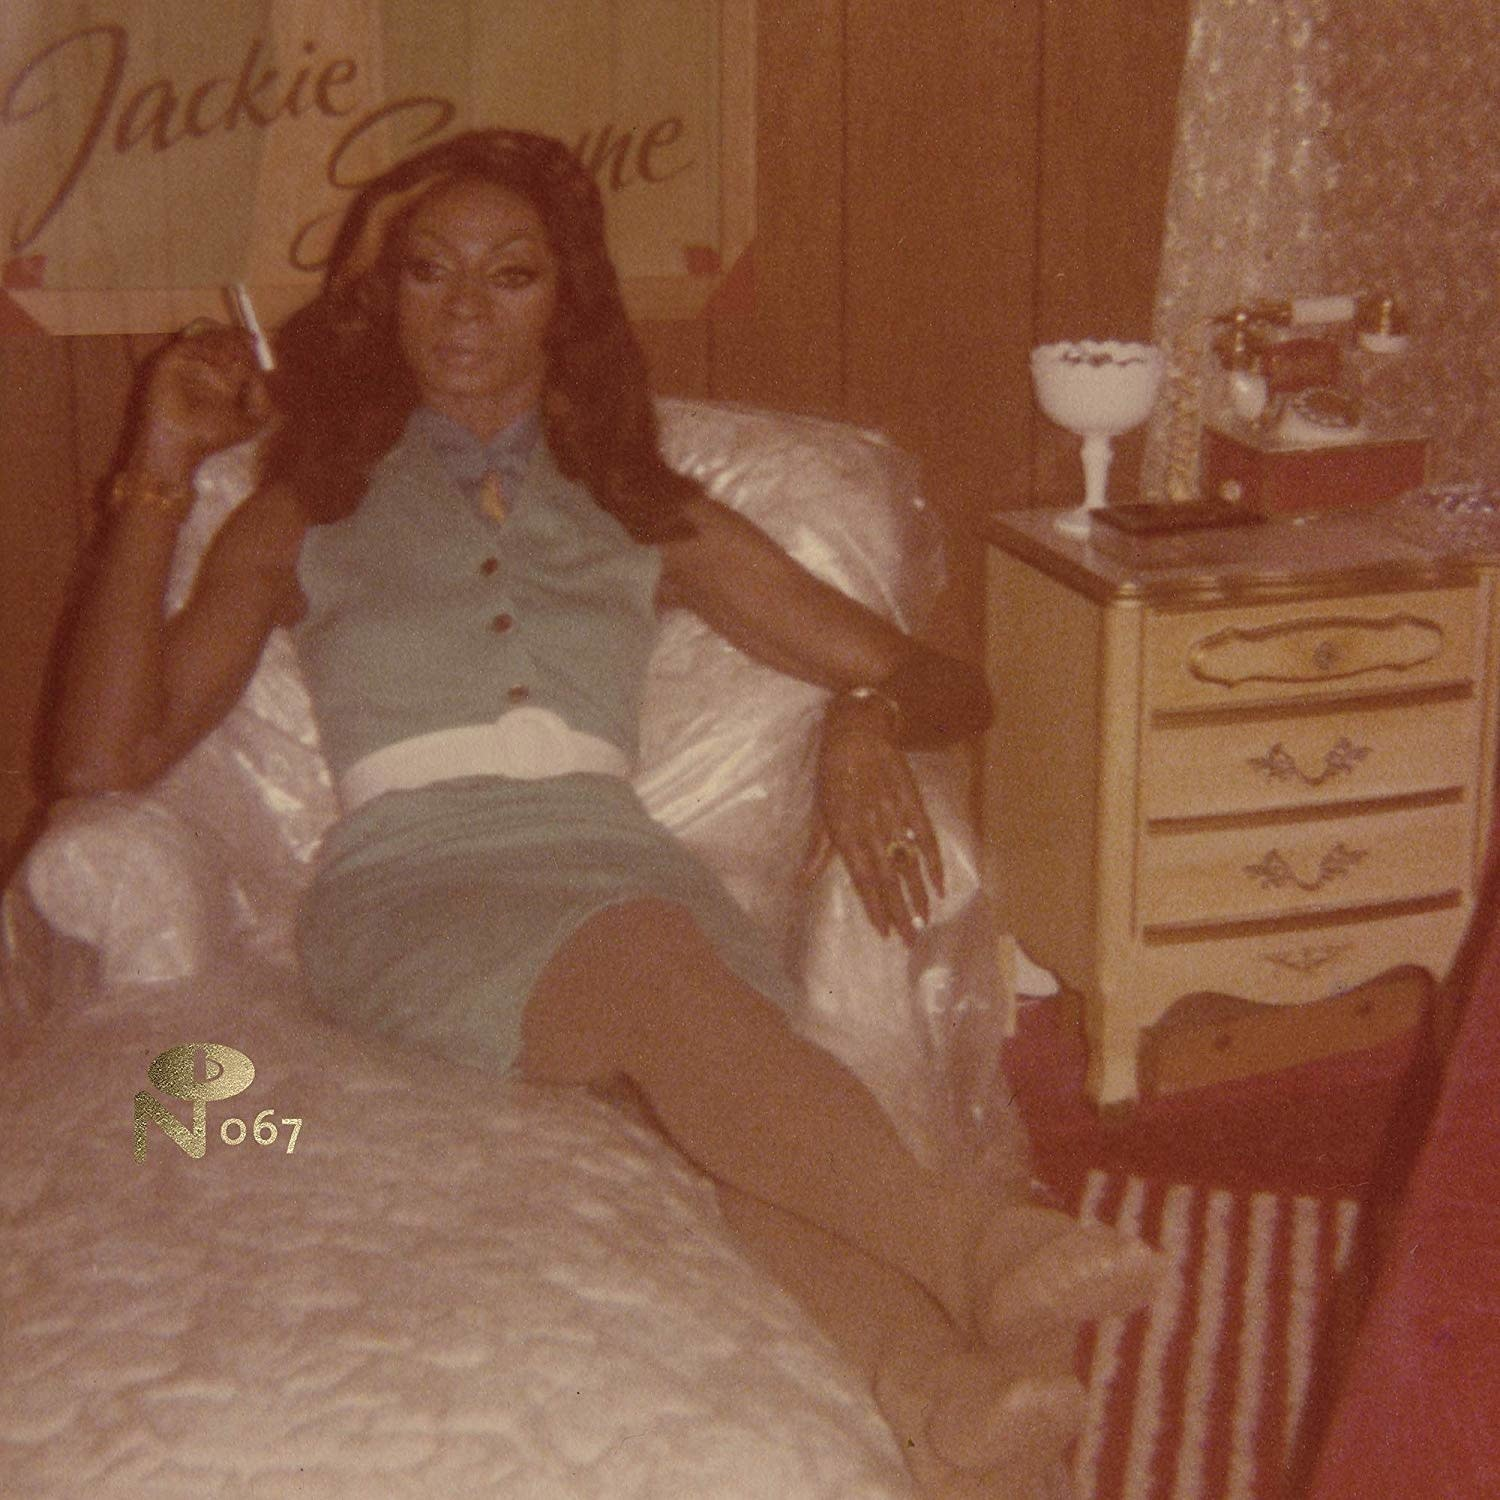 Jackie Shane - Any Other Way